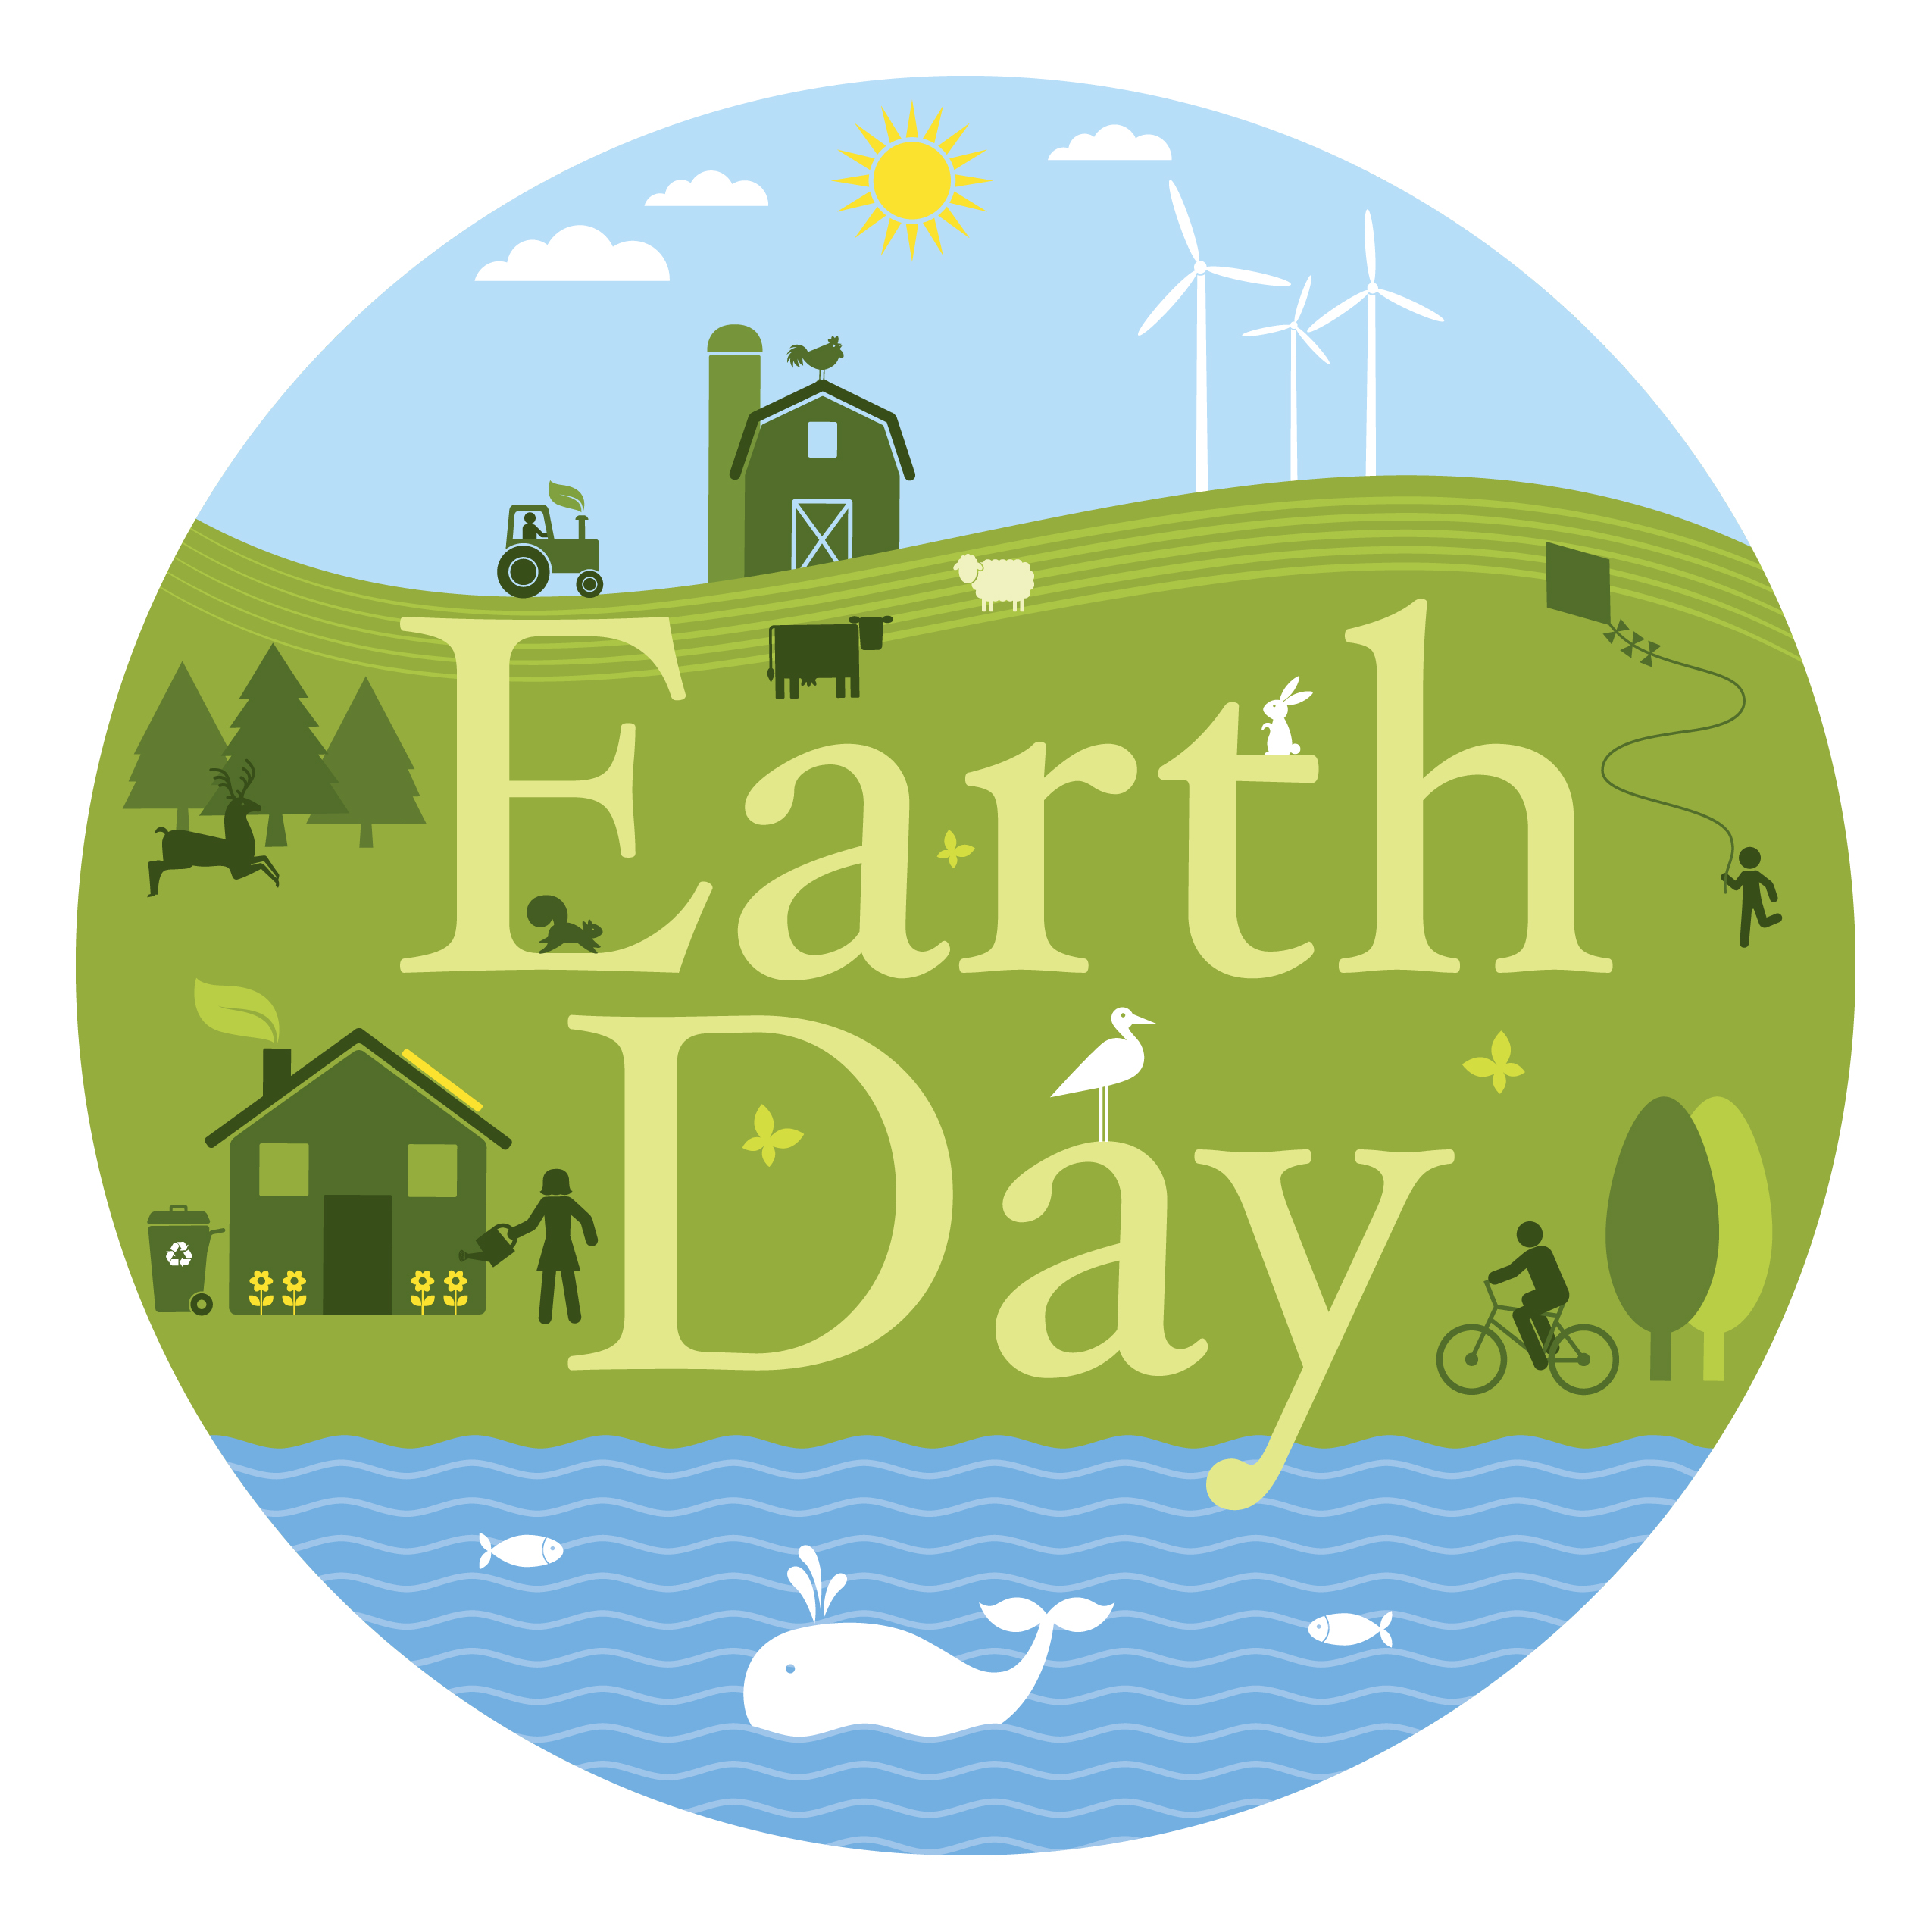 Earth day 2016 clipart.